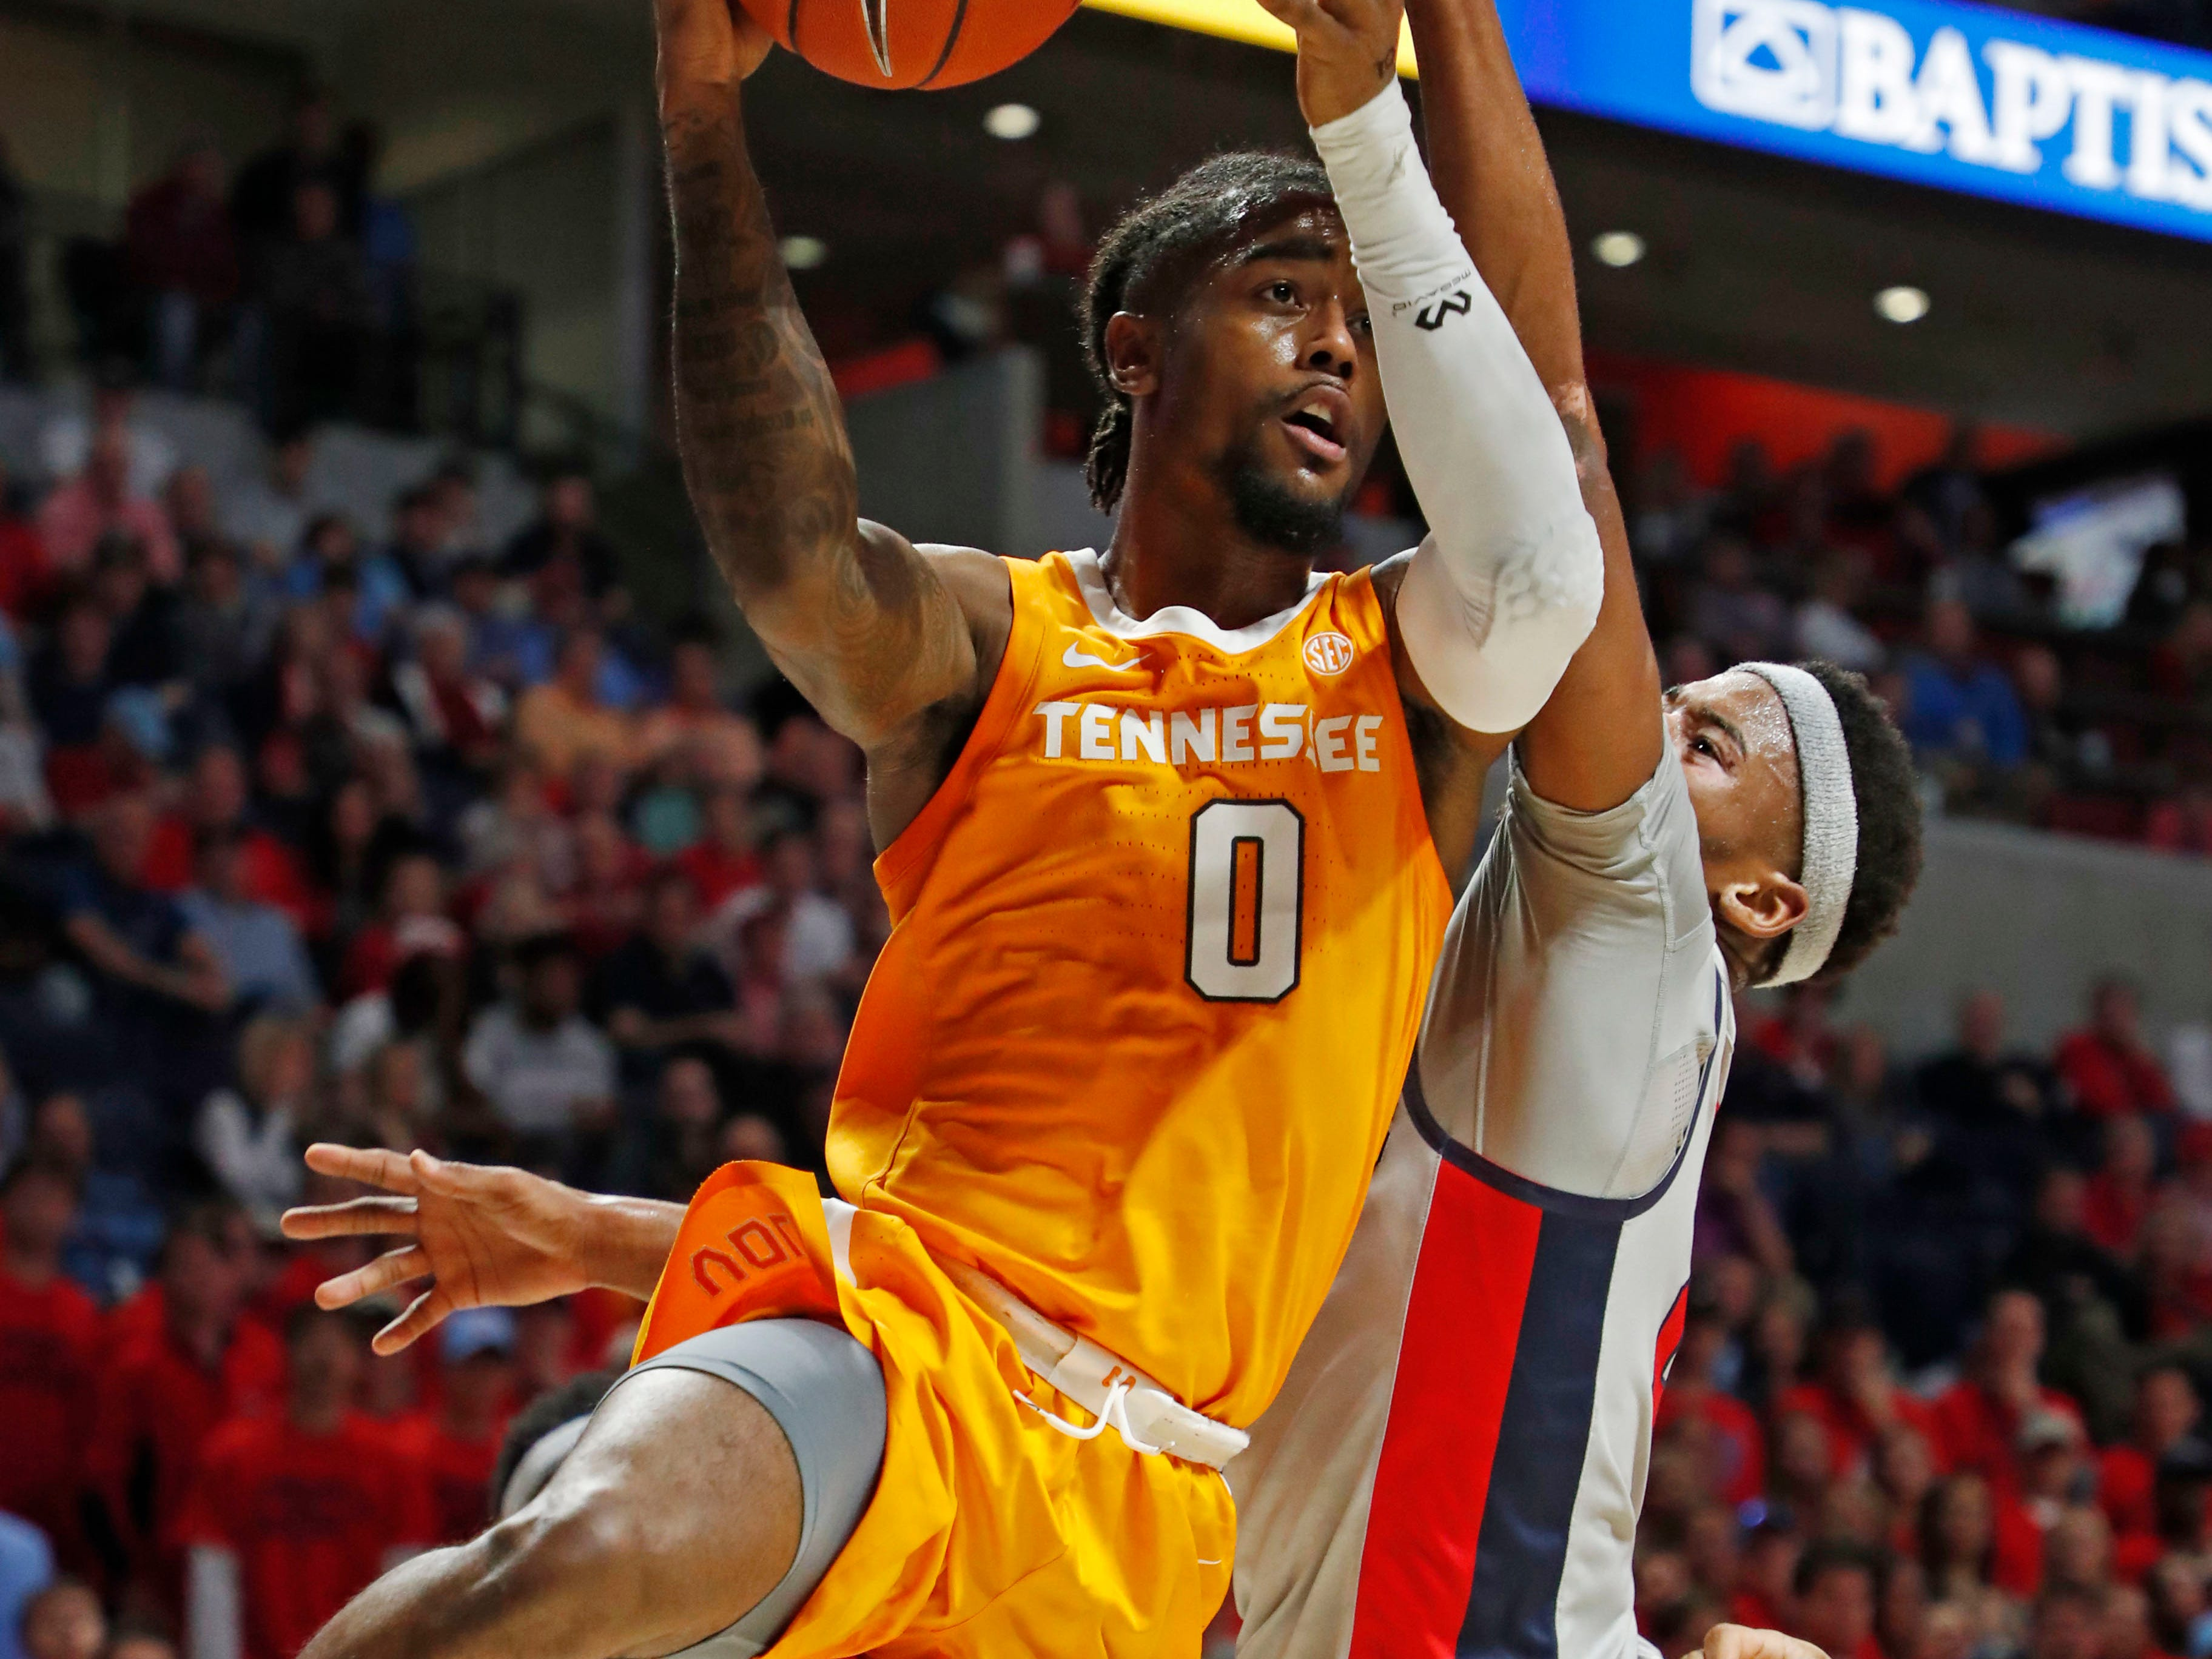 Tennessee guard Jordan Bone (0) forces a pass while Mississippi guard Devontae Shuler (2) reaches for the ball during the first half of an NCAA college basketball game in Oxford, Miss., Wednesday, Feb. 27, 2019. (AP Photo/Rogelio V. Solis)